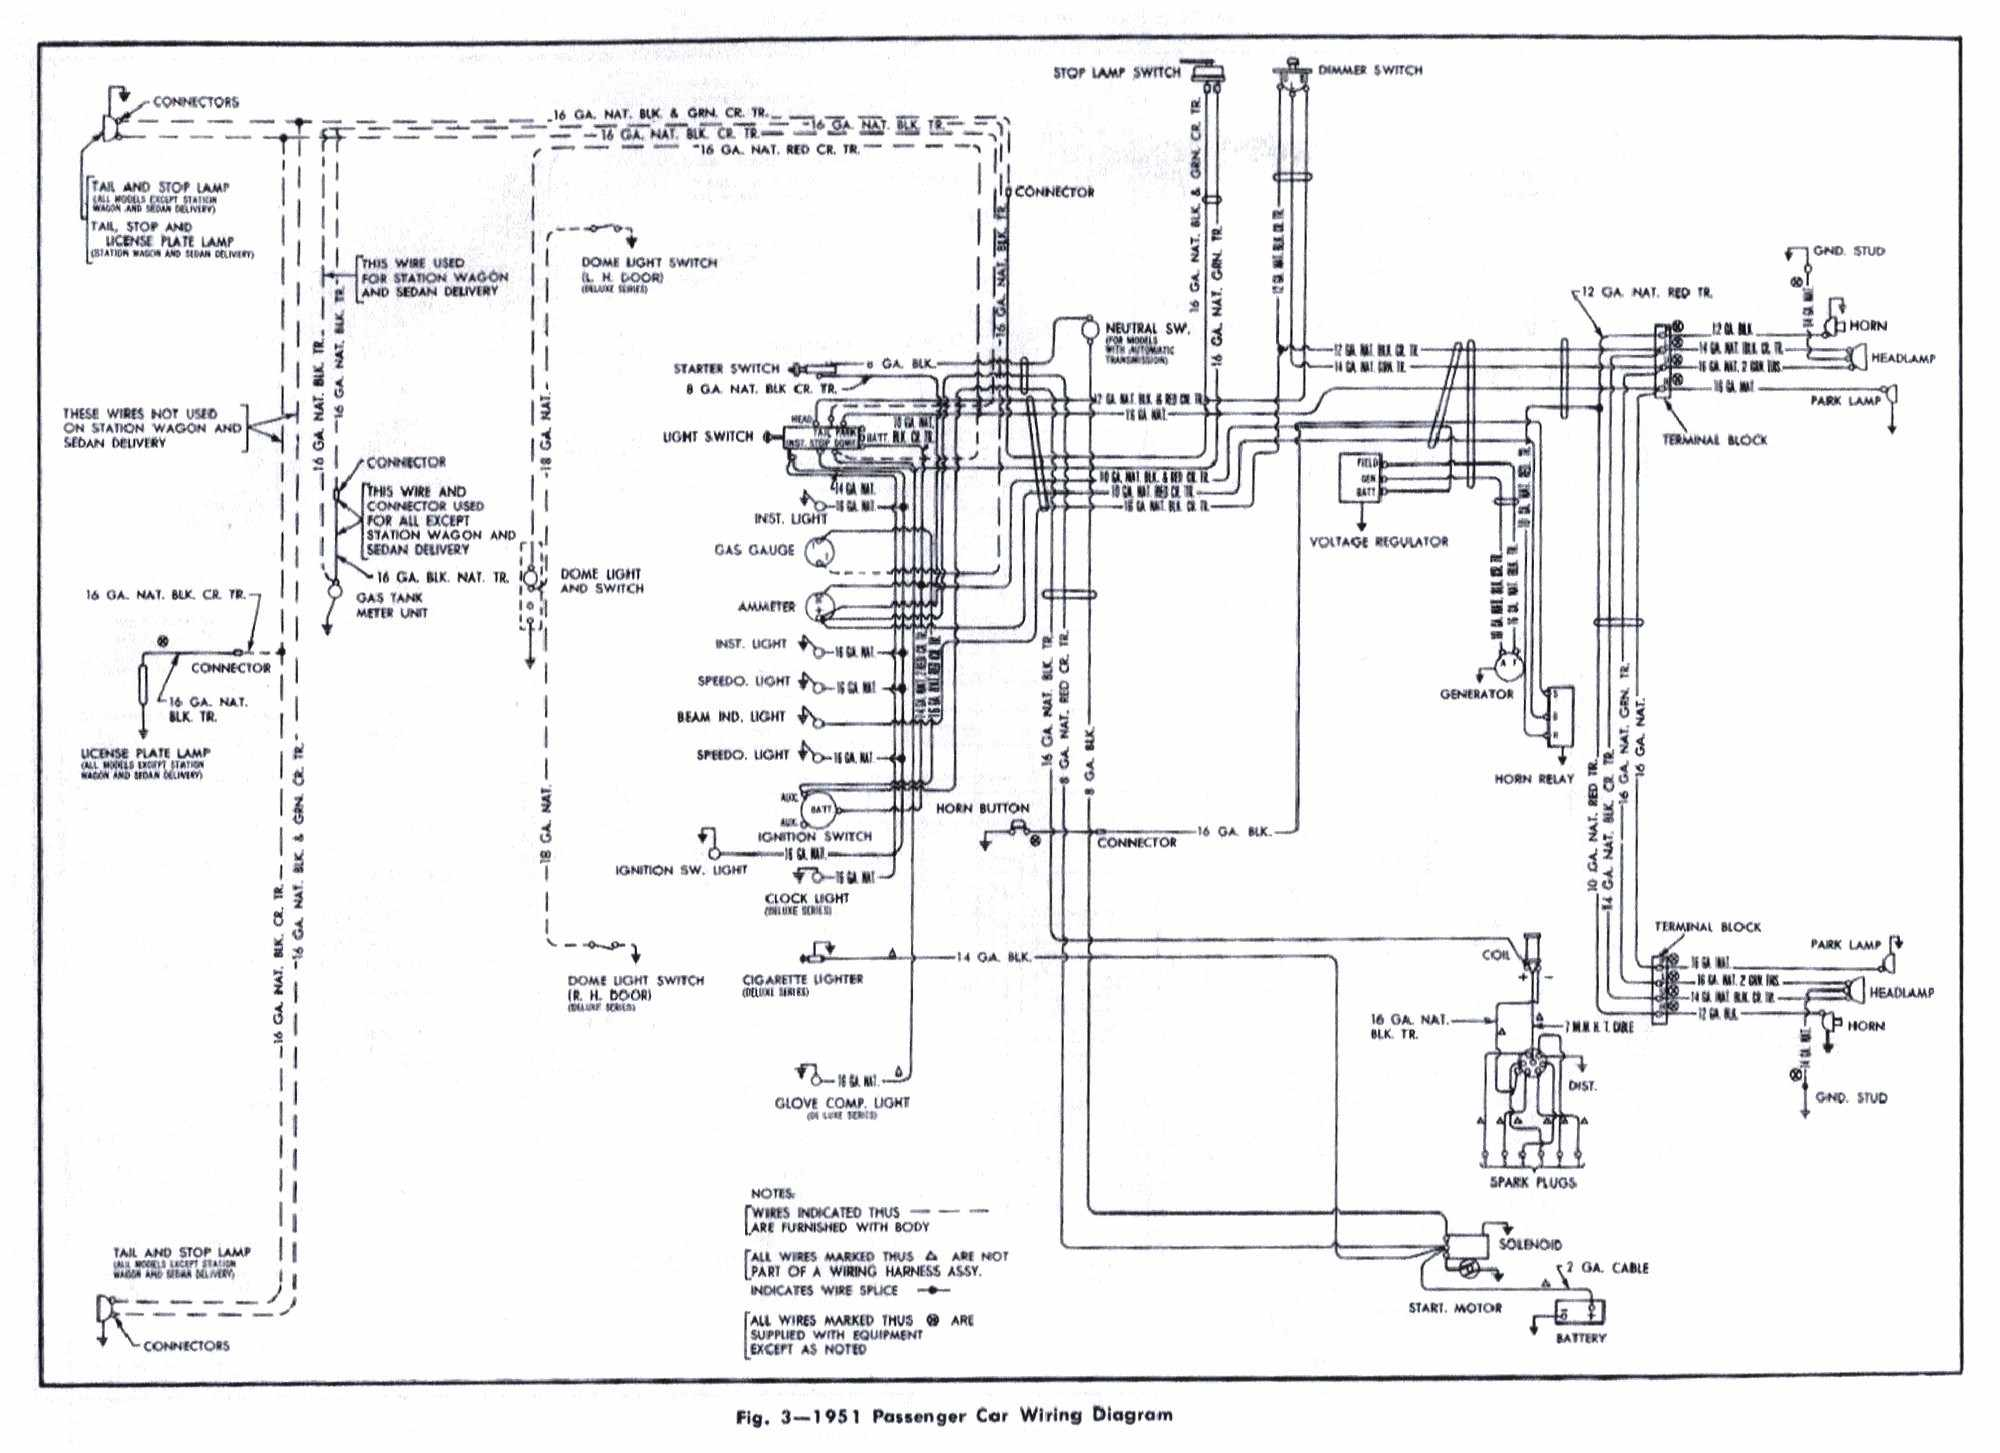 356 wiring diagram pelican parts porsche 356 electrical diagram